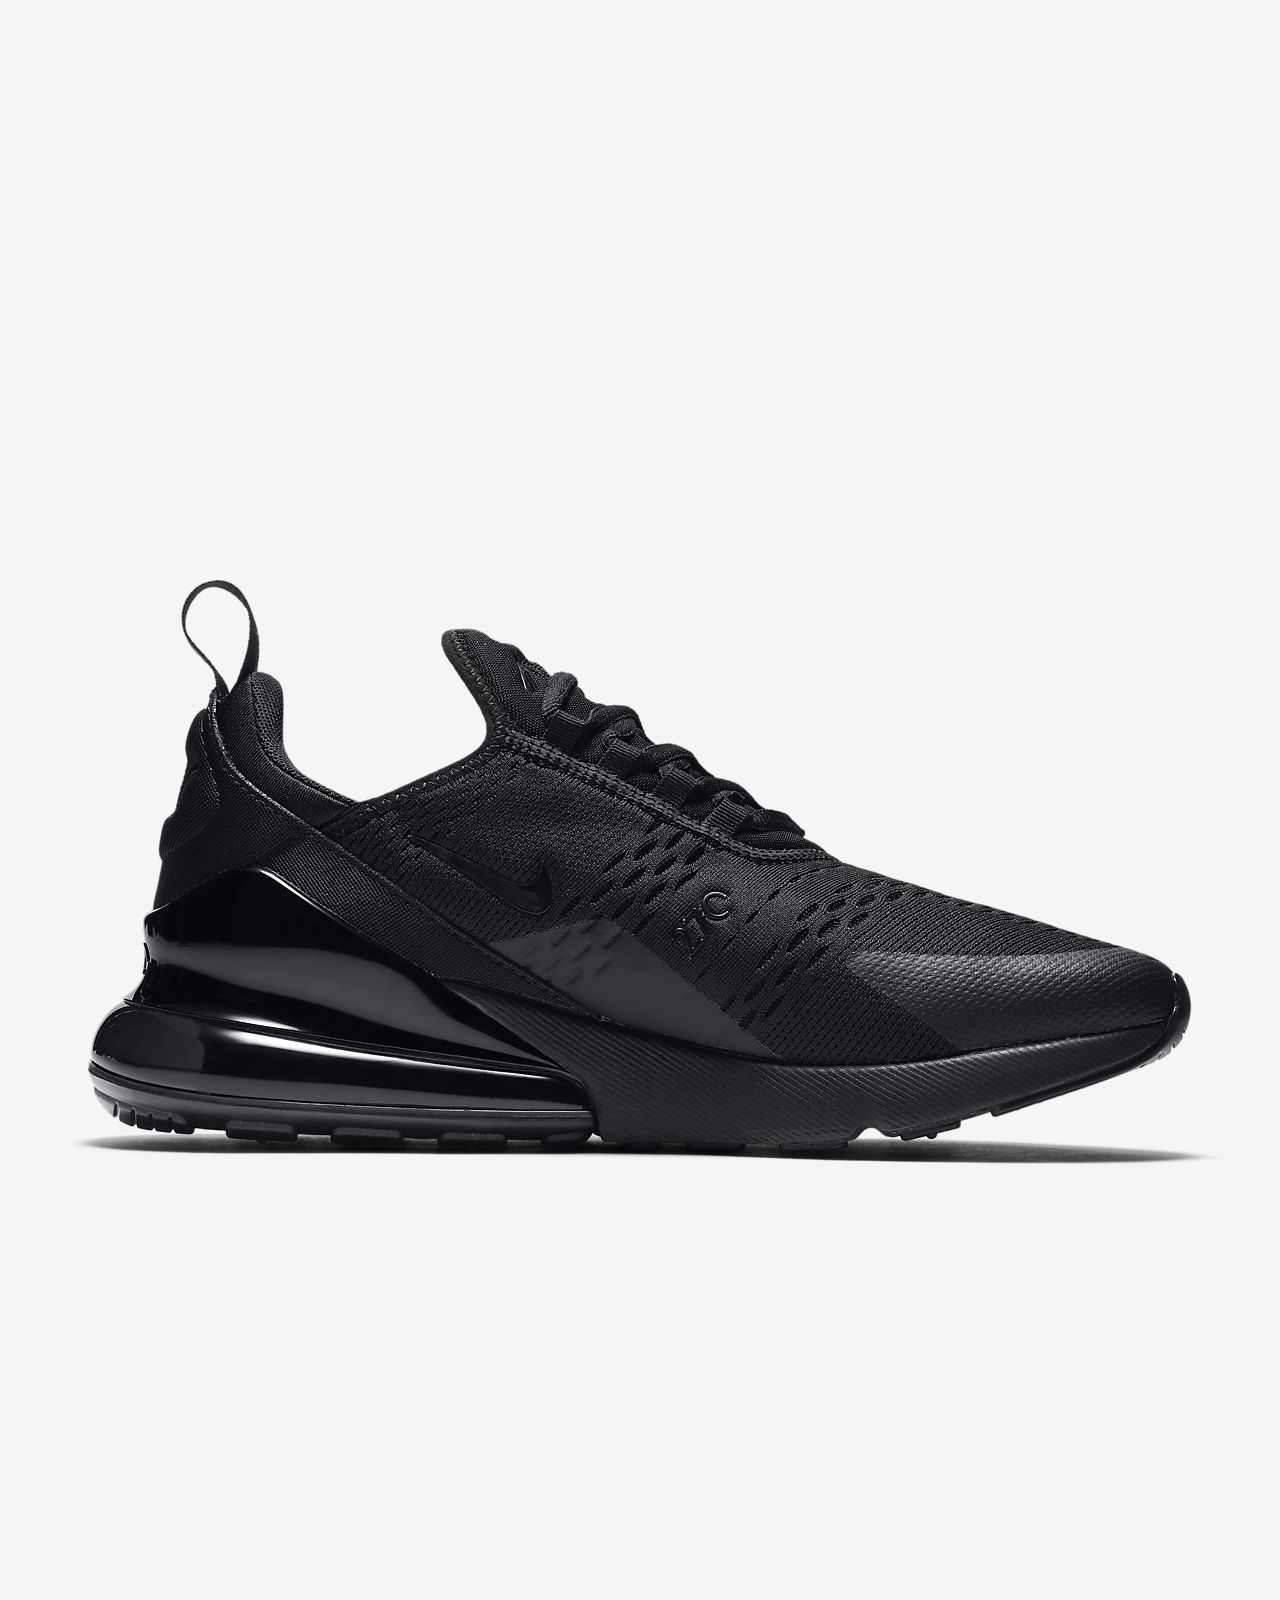 a7e316c382 Nike Air Max 270 Men's Shoe. Nike.com AU